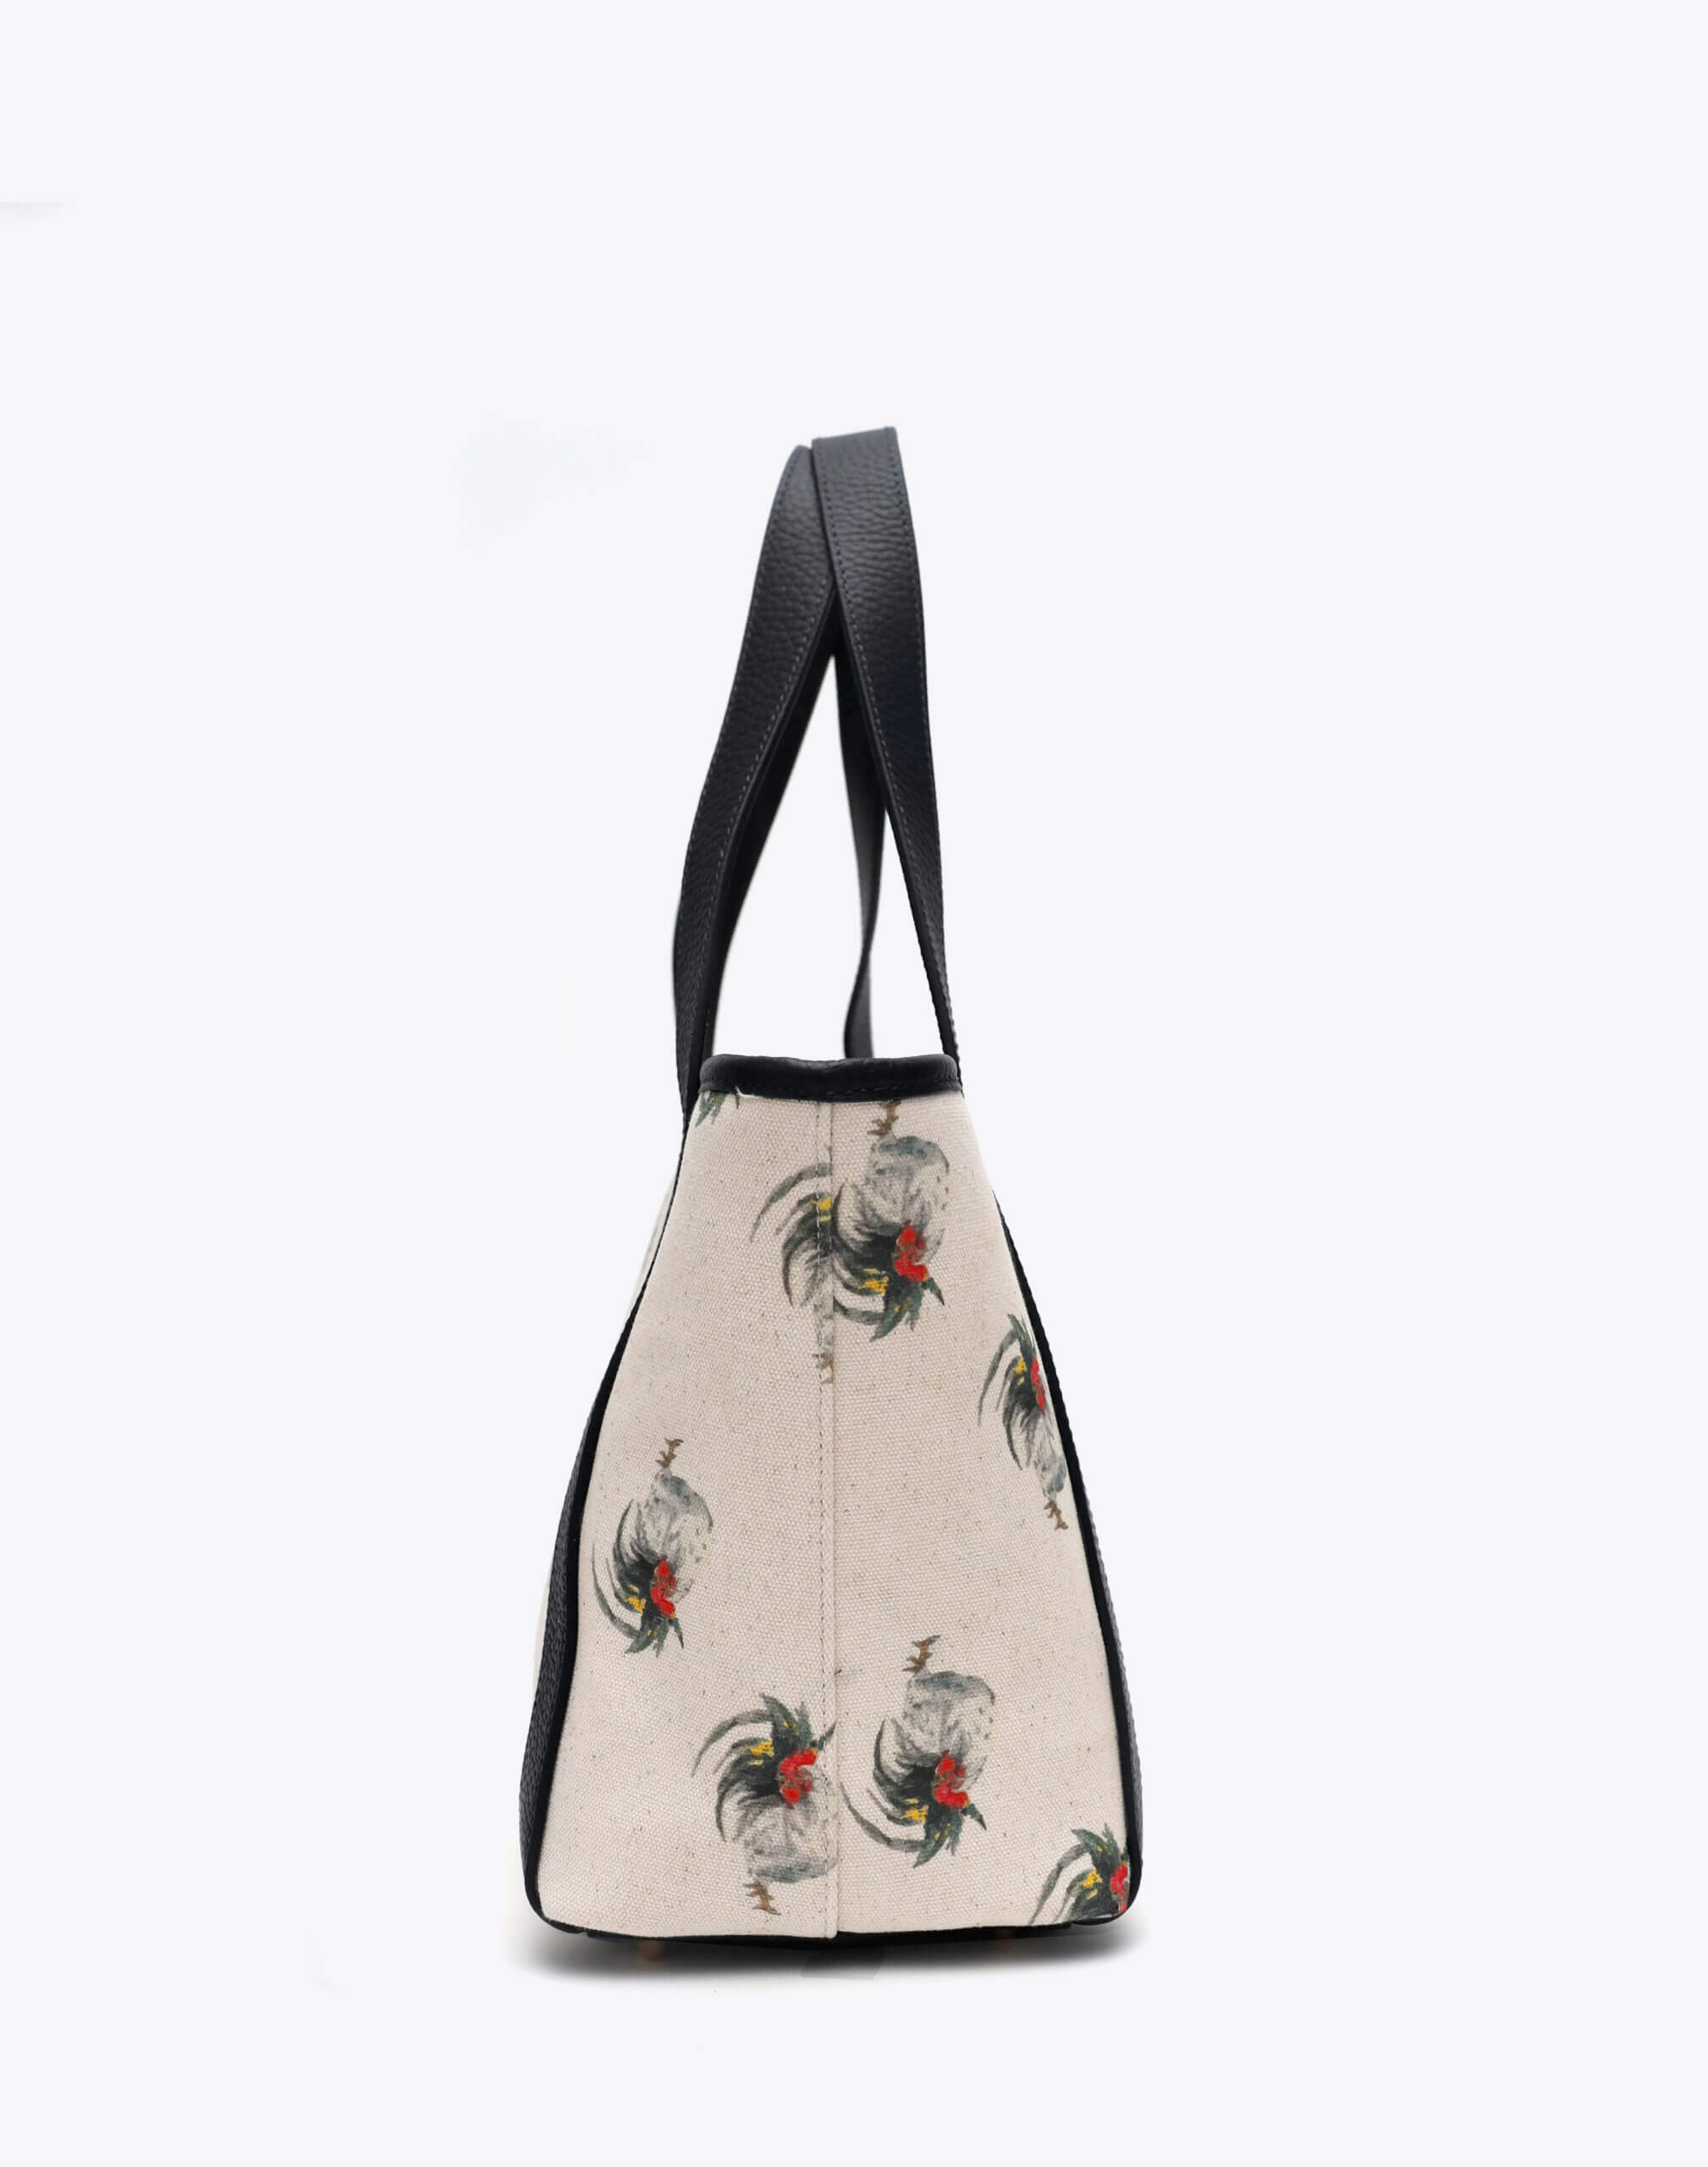 Neely and Chloe Chicken Print Travel Tote Side View Black